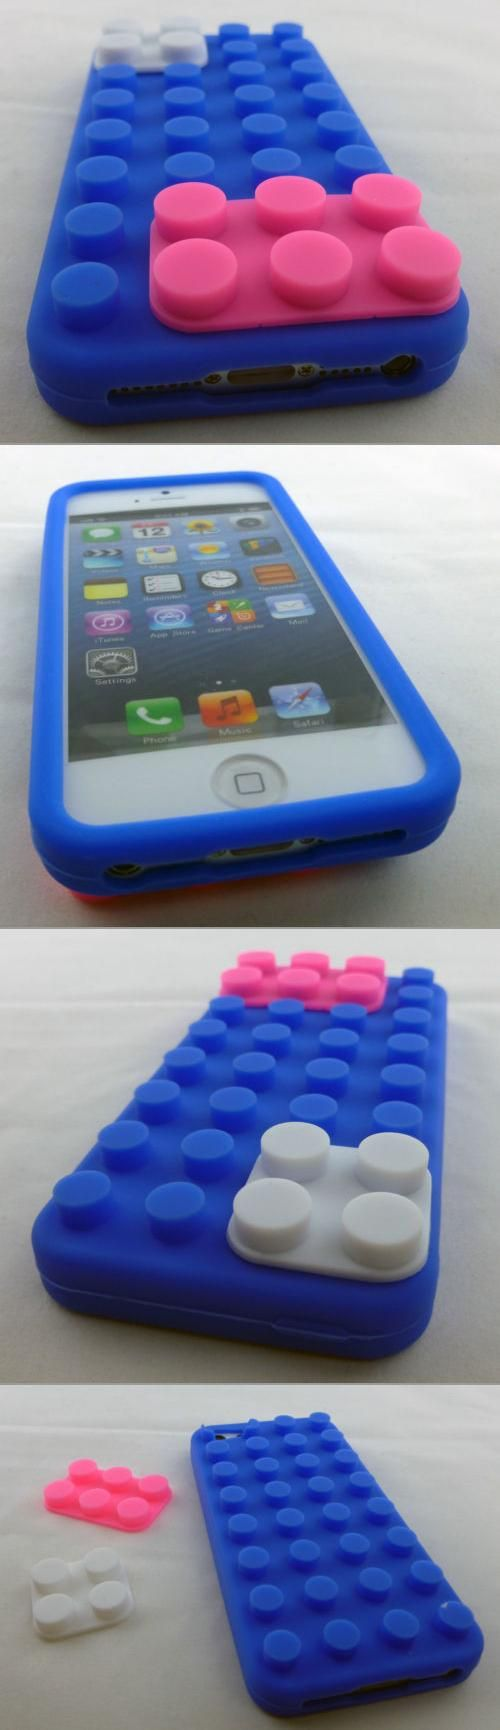 Love LEGO enough to get a handcrafted phone case?